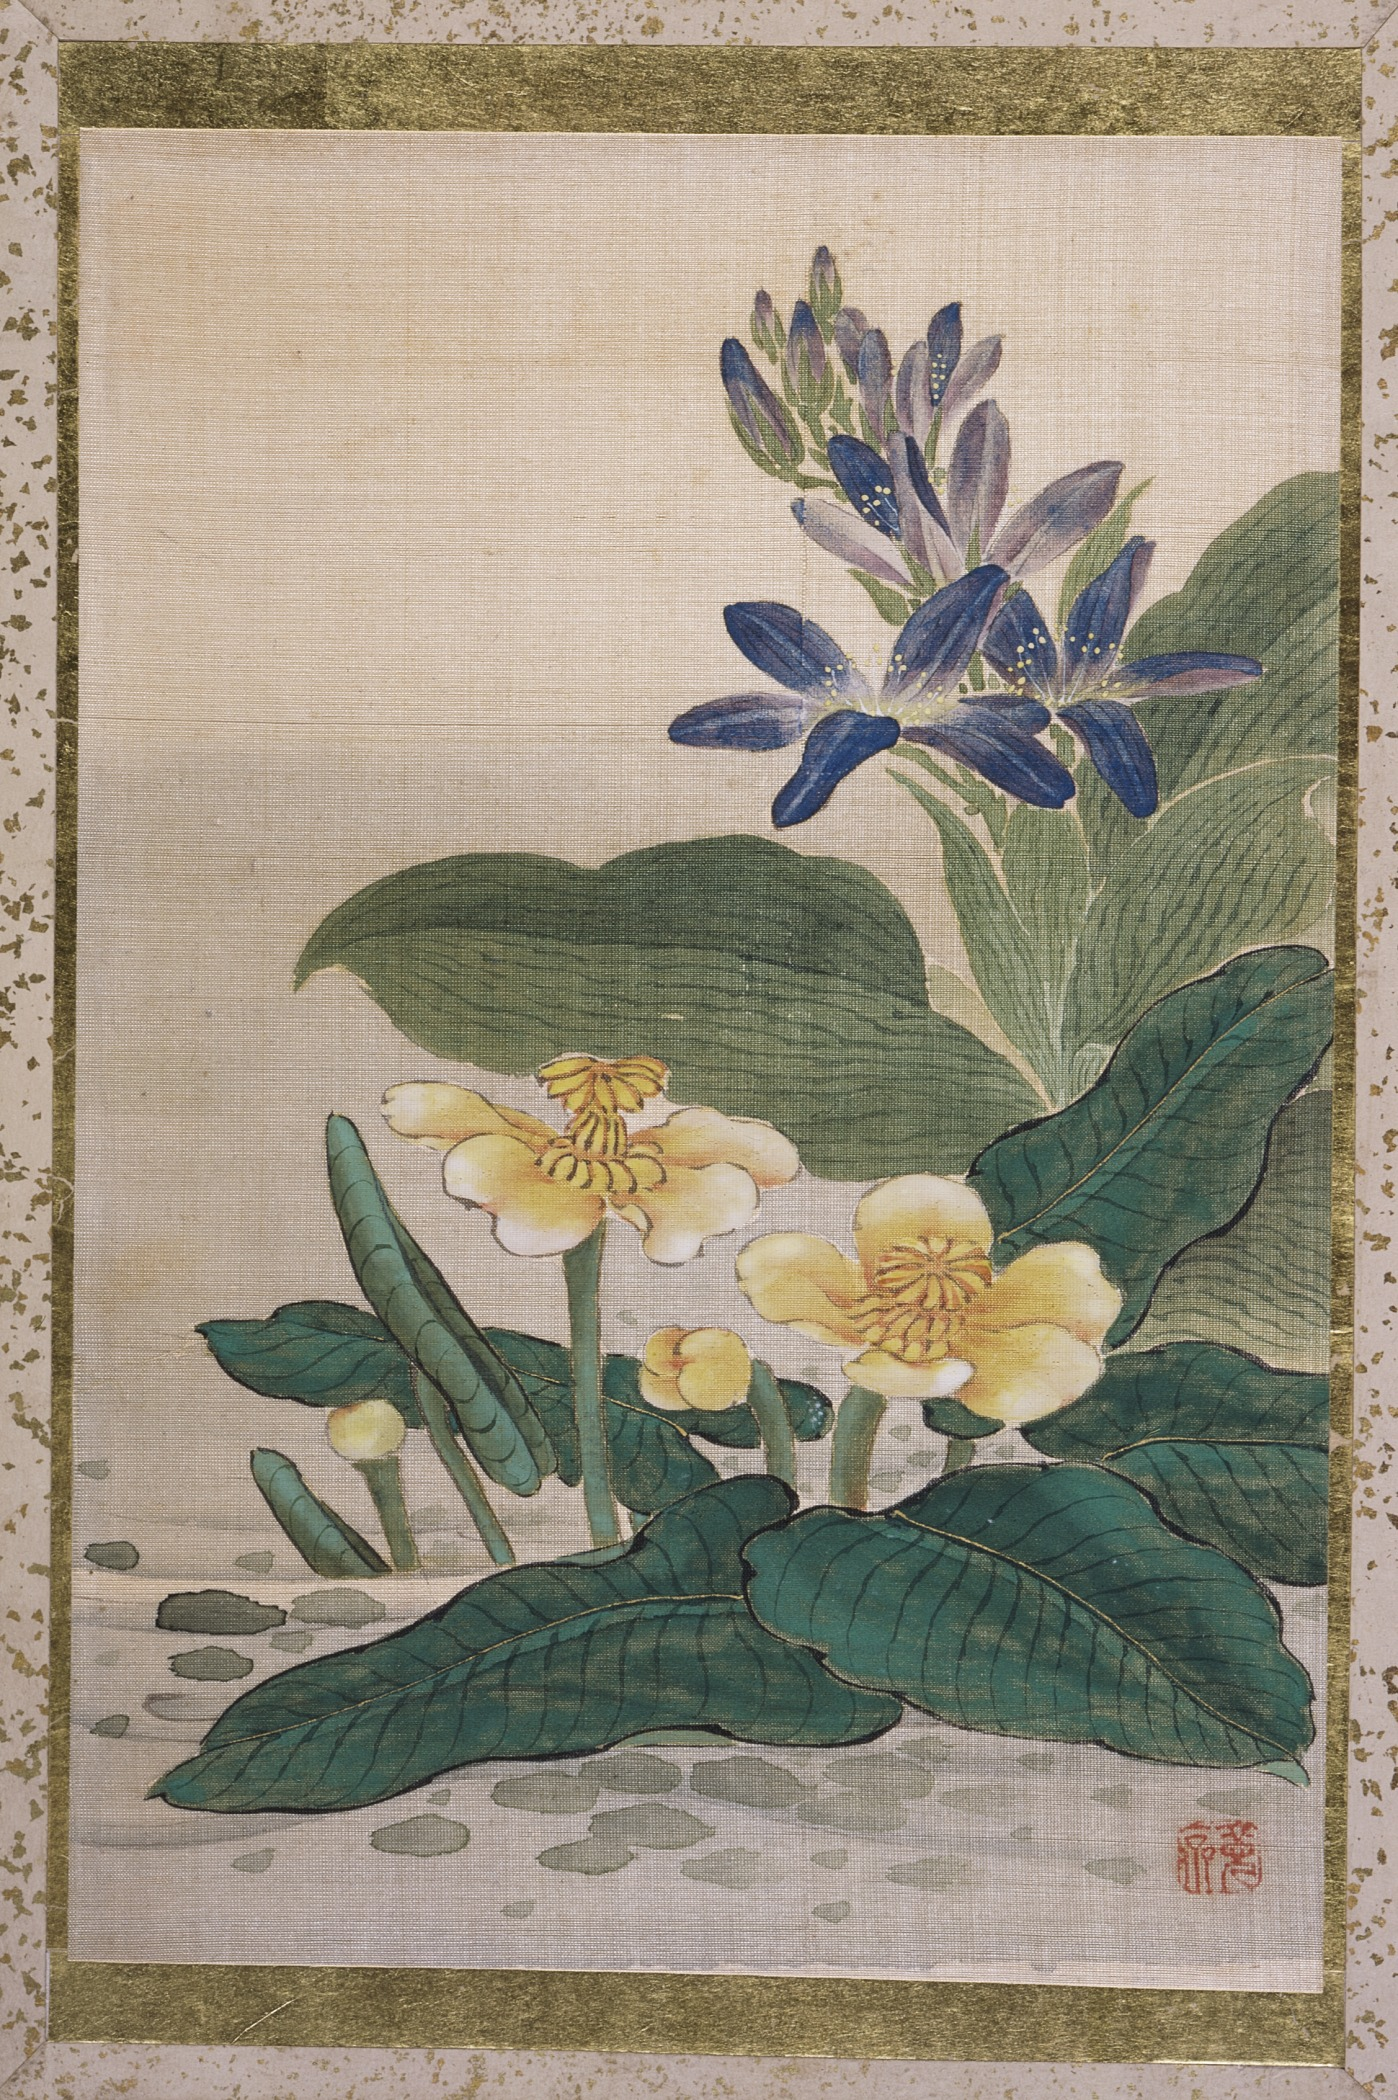 https://upload.wikimedia.org/wikipedia/commons/3/3e/Pictures_of_Flowers_and_Birds_LACMA_M.85.99_%281_of_25%29.jpg